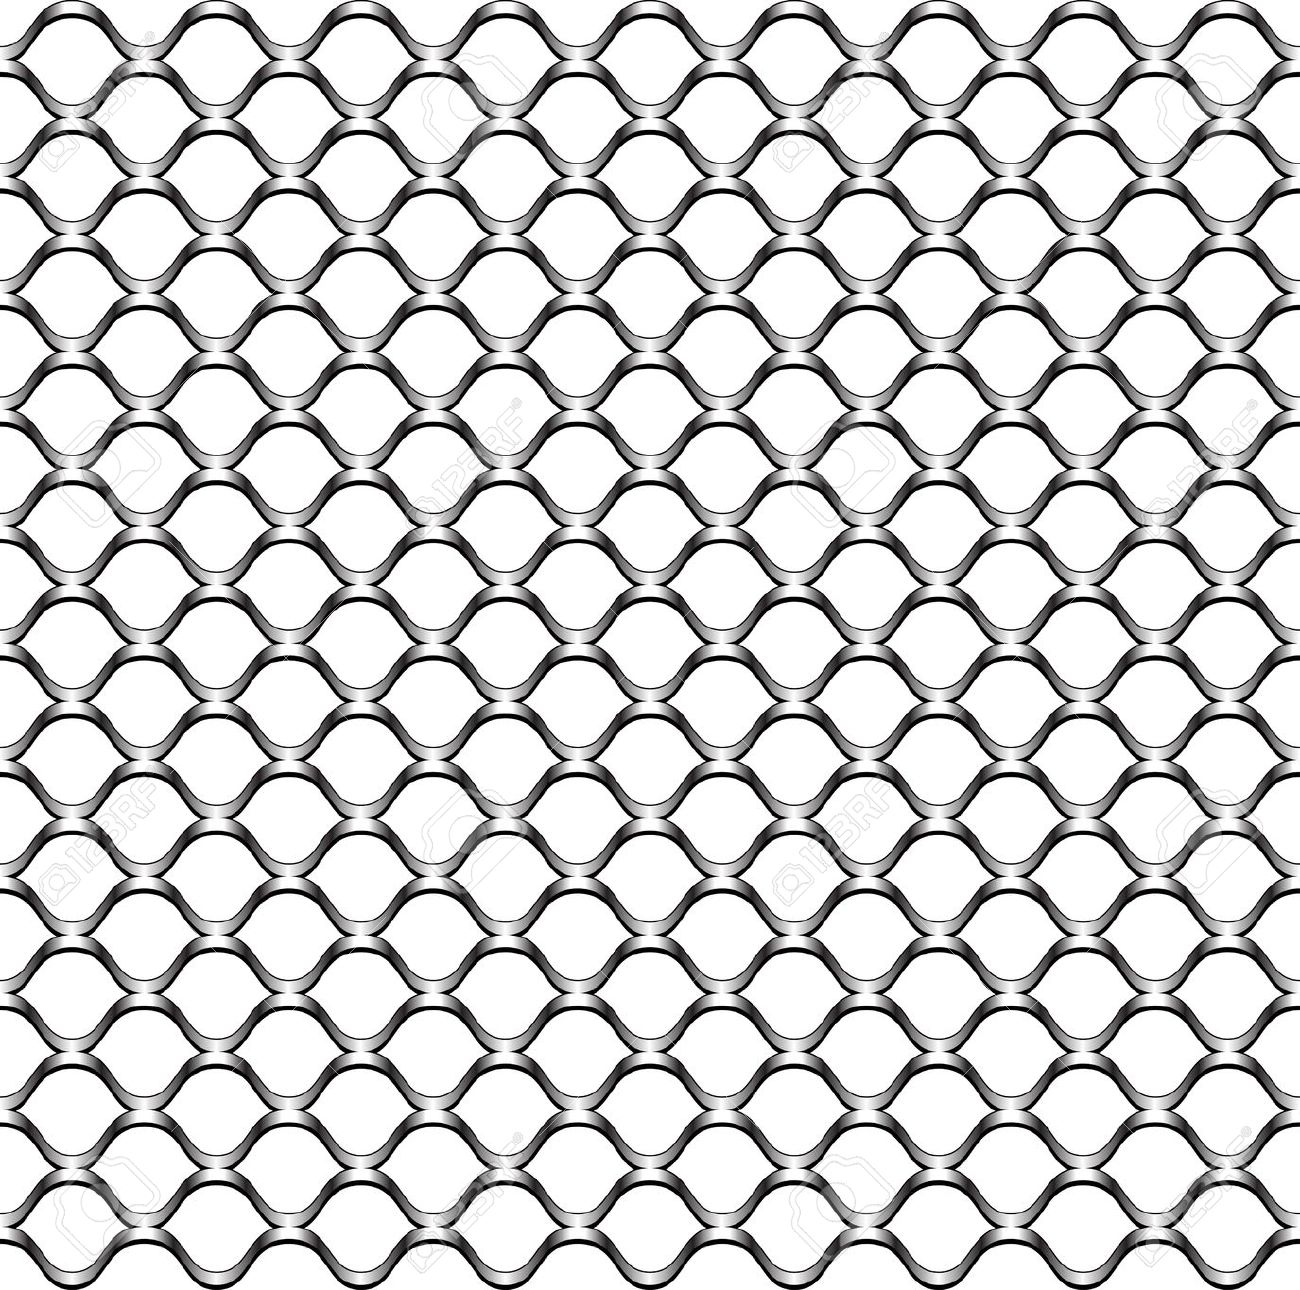 Grid Pattern IIllustration